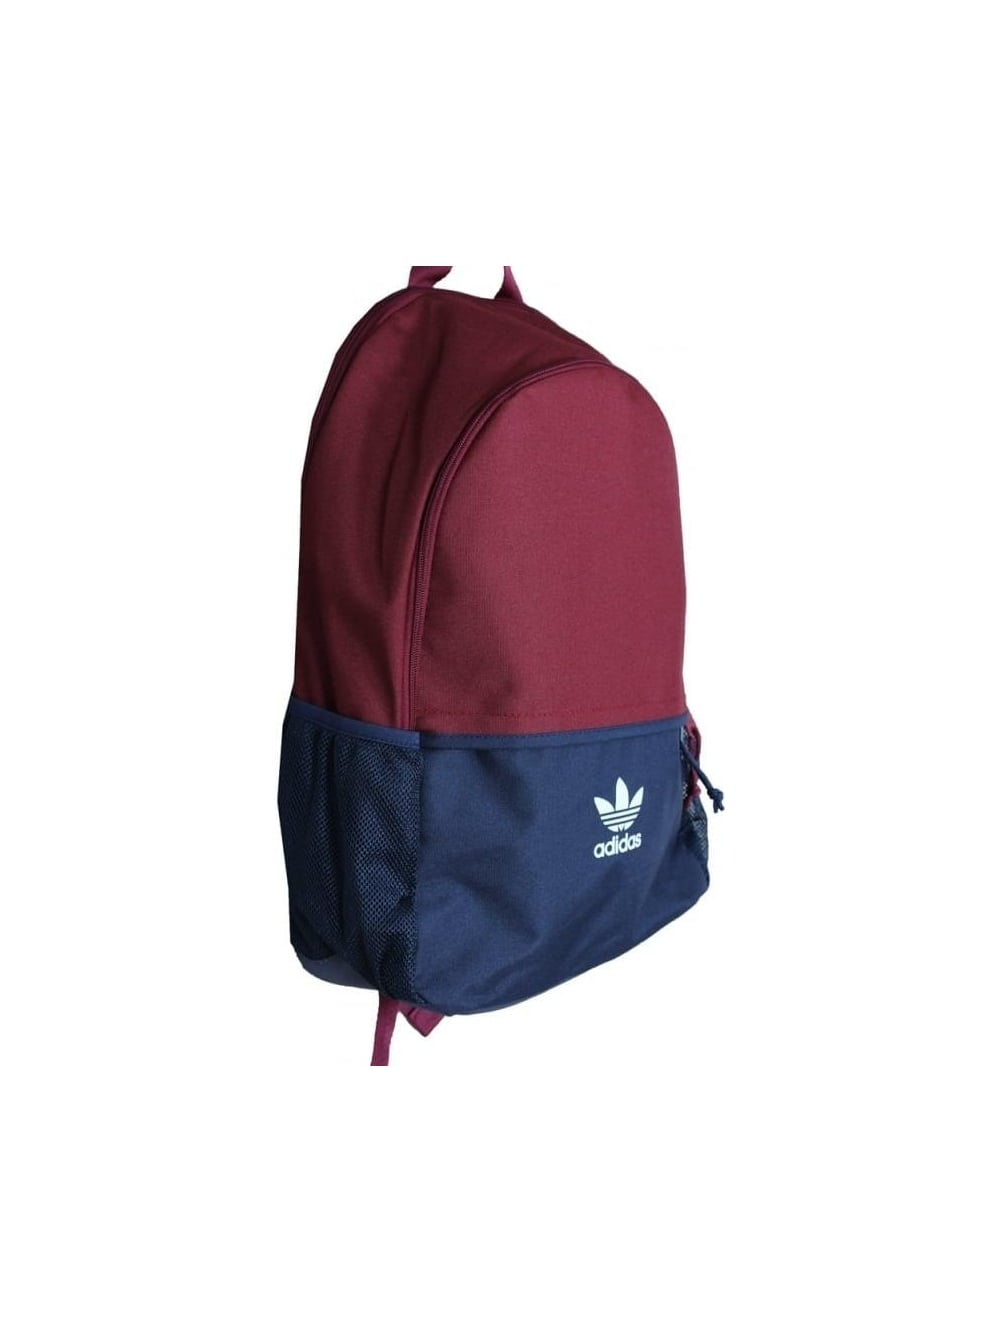 adidas originals Essentials Backpack in Burgundy - Northern Threads f5fae6912d